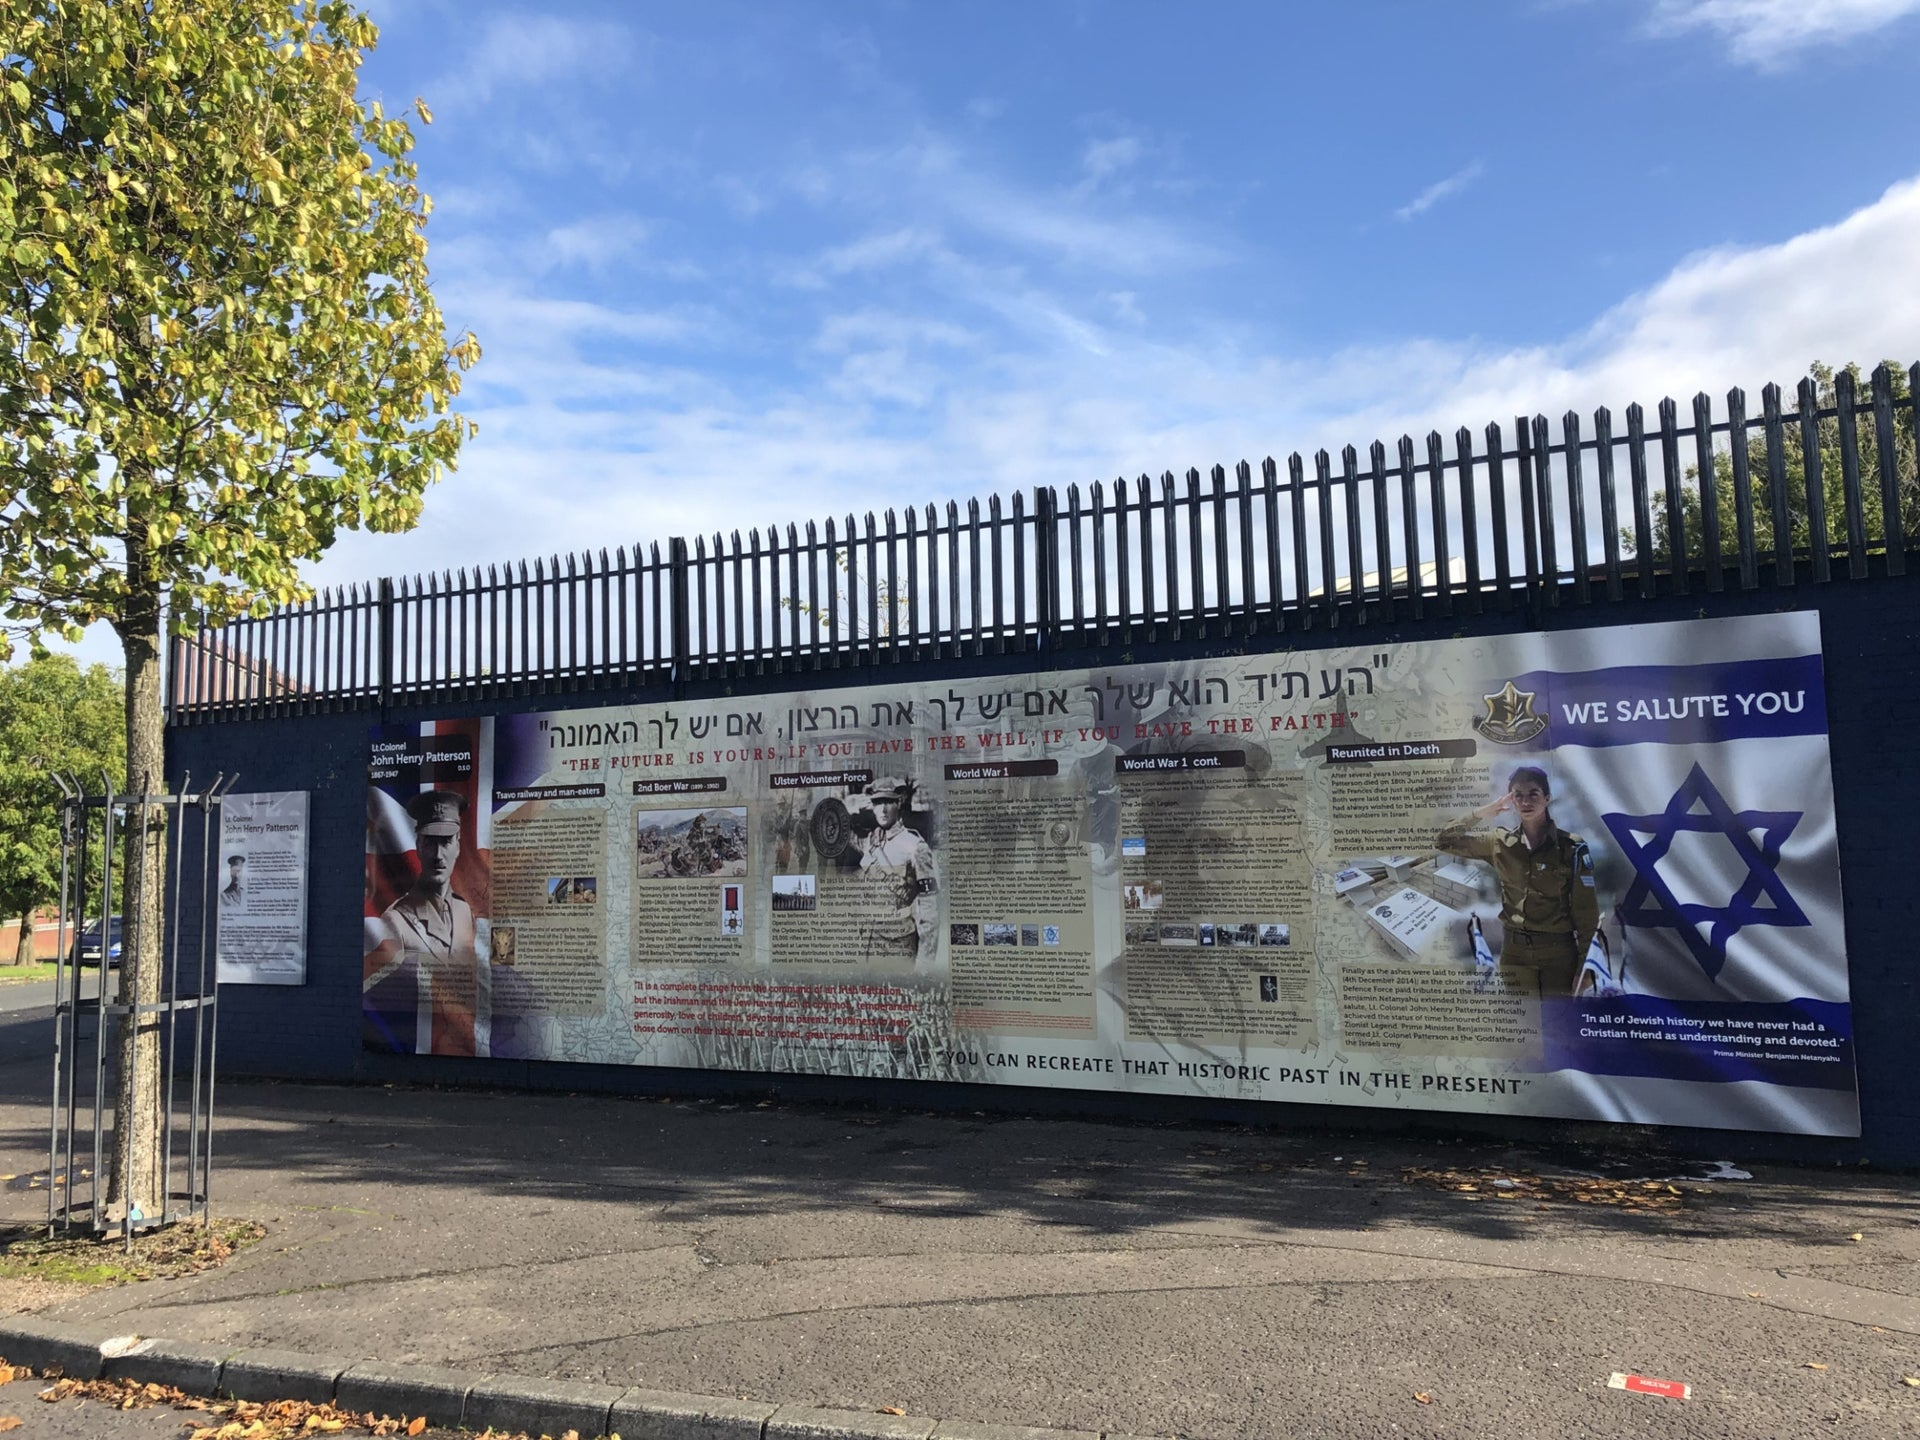 A pro-Israel mural at the unionist end of Northumberland Road, West Belfast.